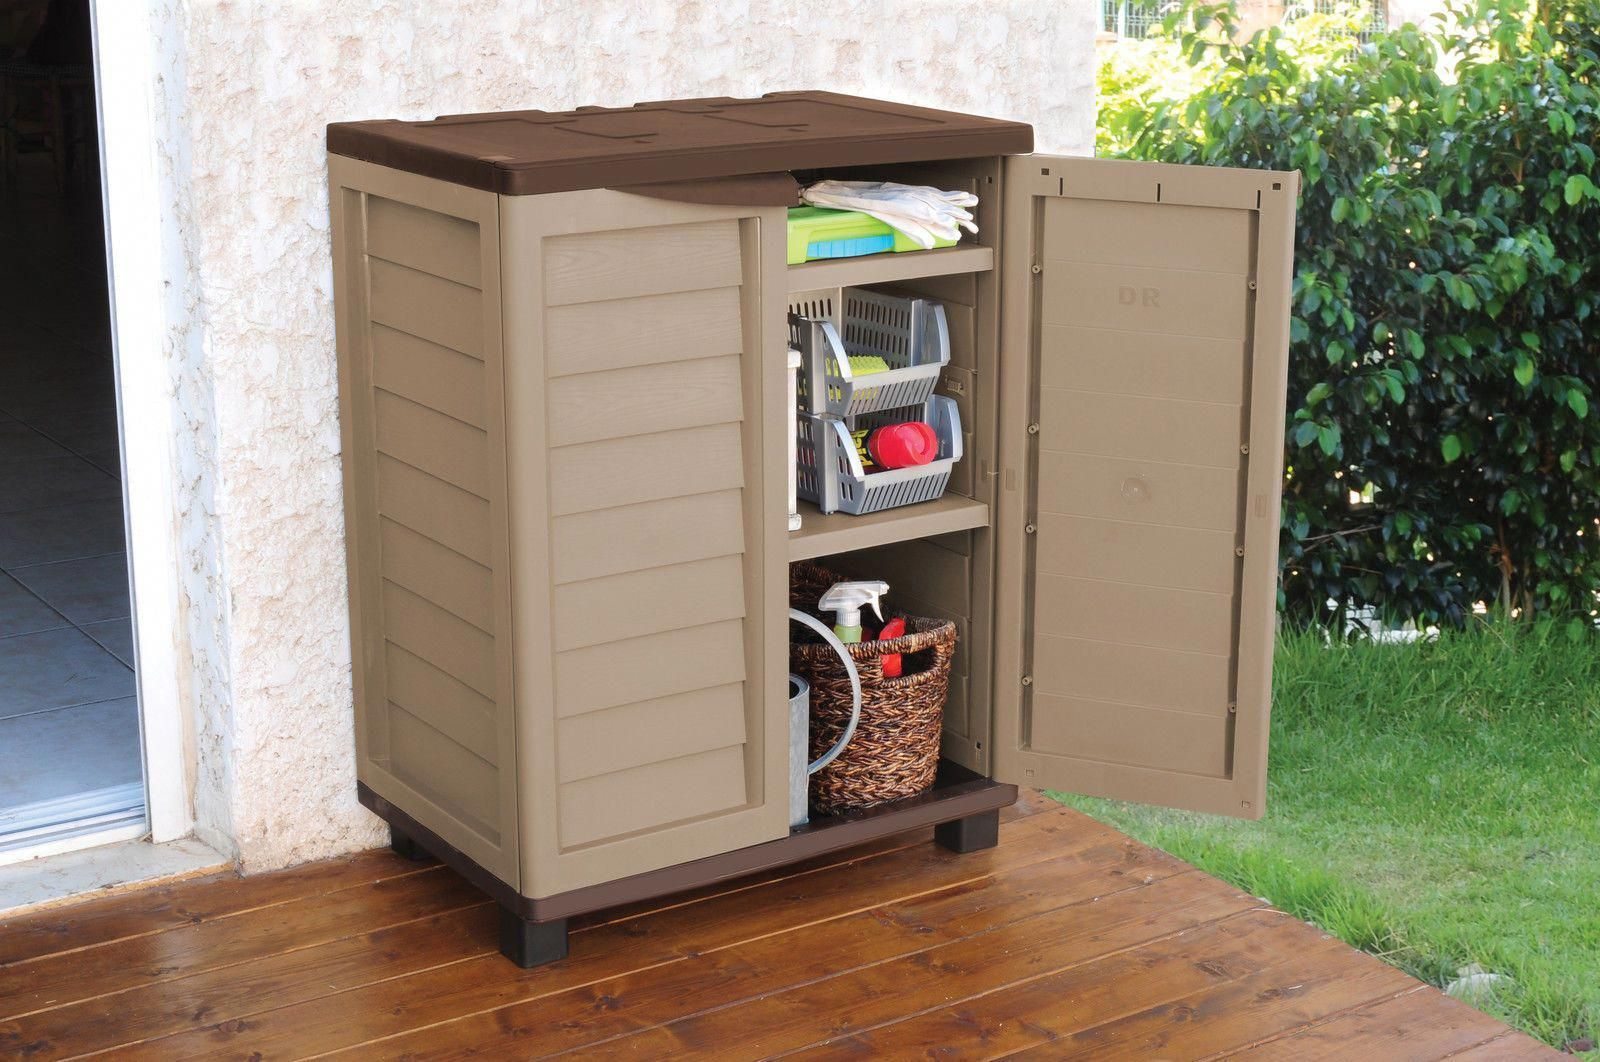 3ft Plastic Garden Storage Utility Shed Cabinet With Shelves